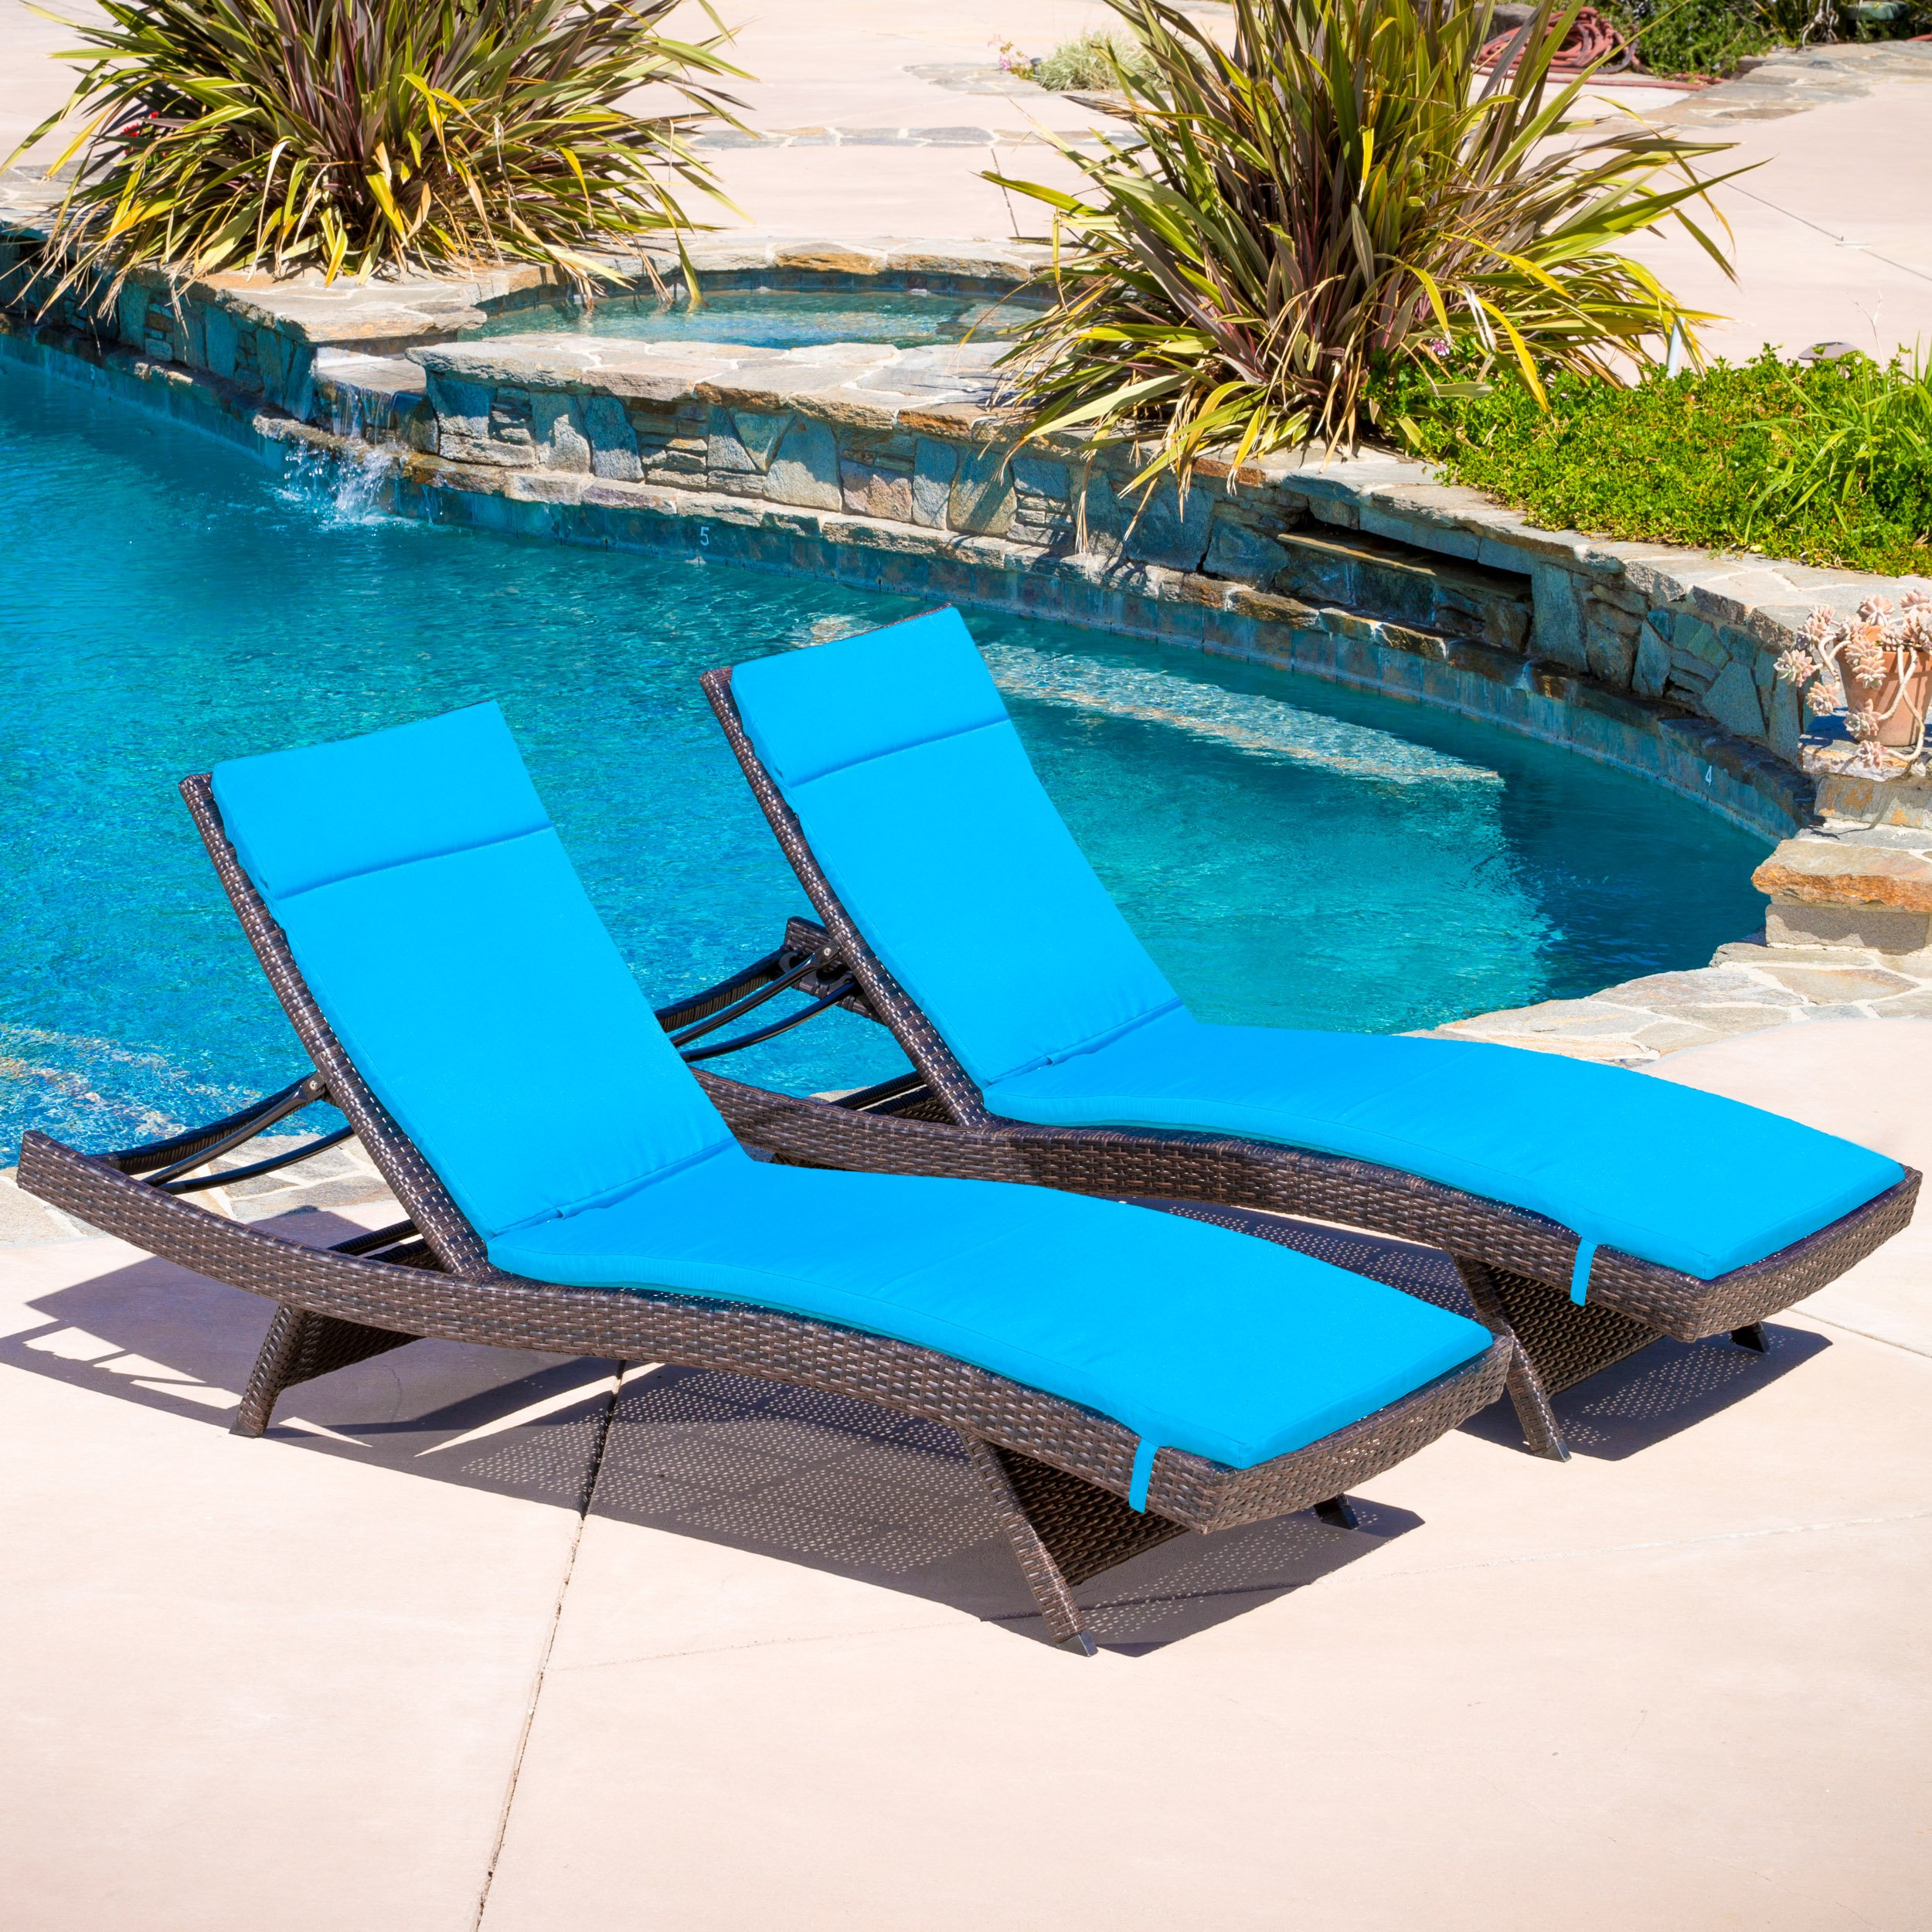 Christopher Knight Home 295119 Salem Patio Chaise Lounge, Multibrown/Blue by Christopher Knight Home (Image #1)